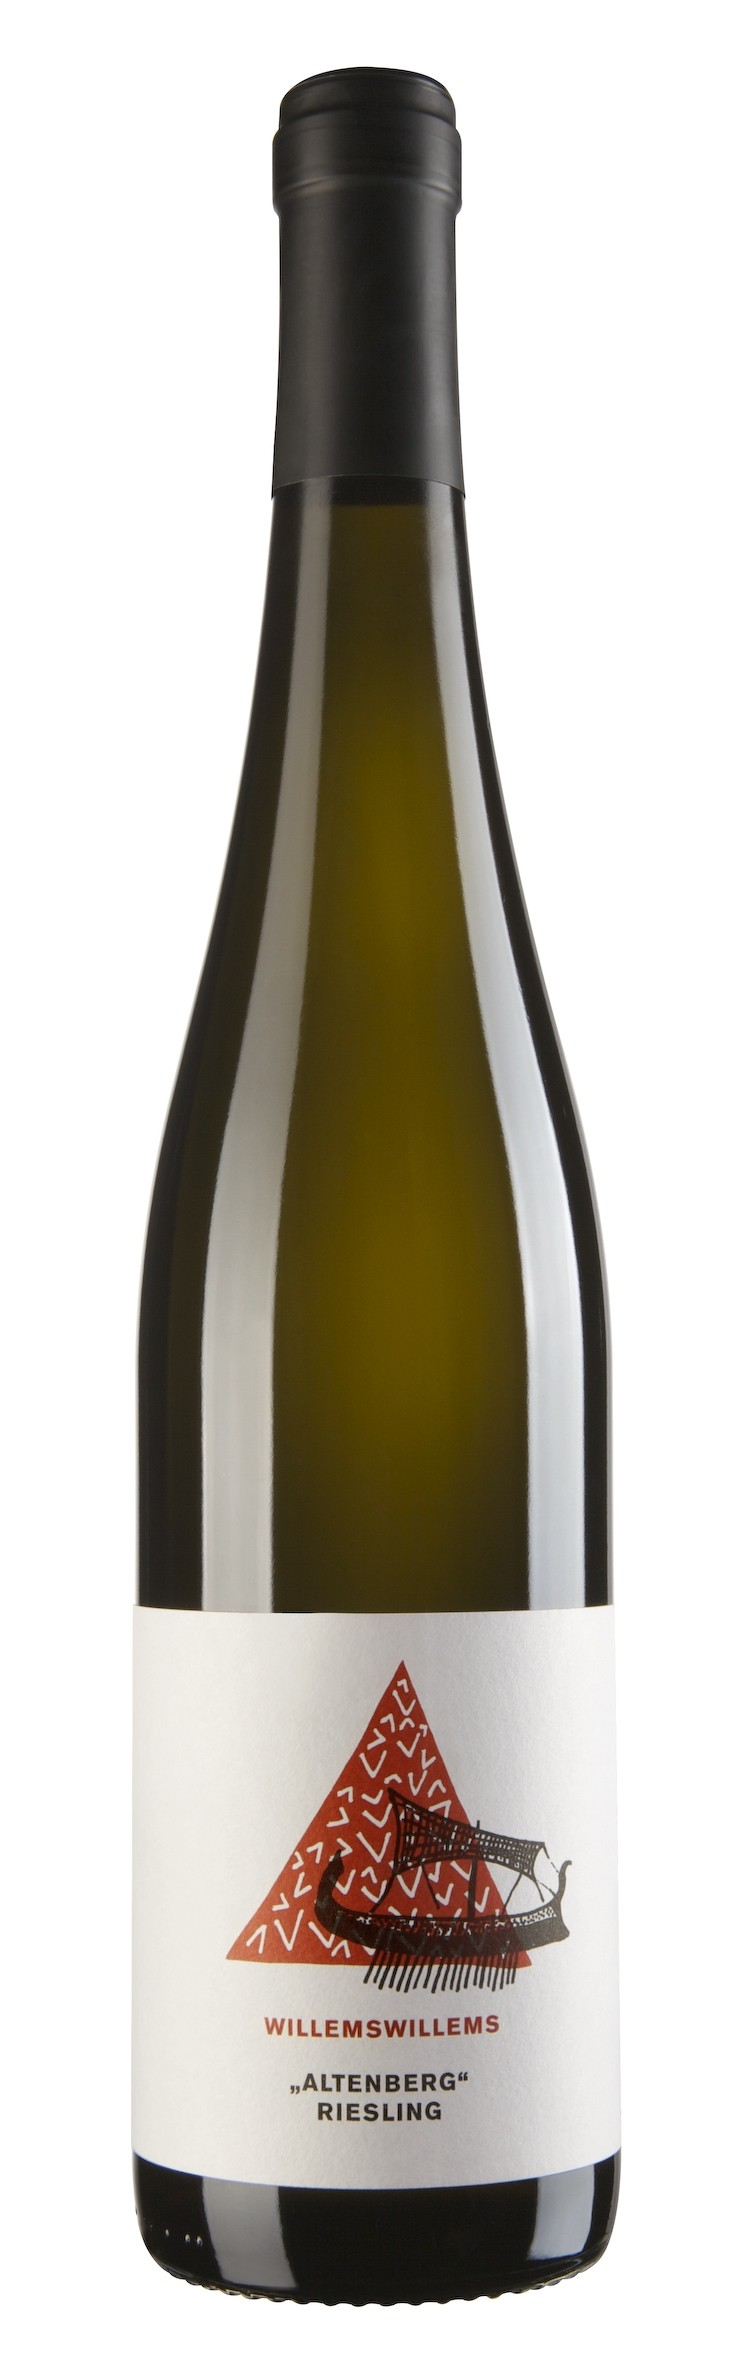 Willems Willems 'Altenberg' Riesling Feinherb